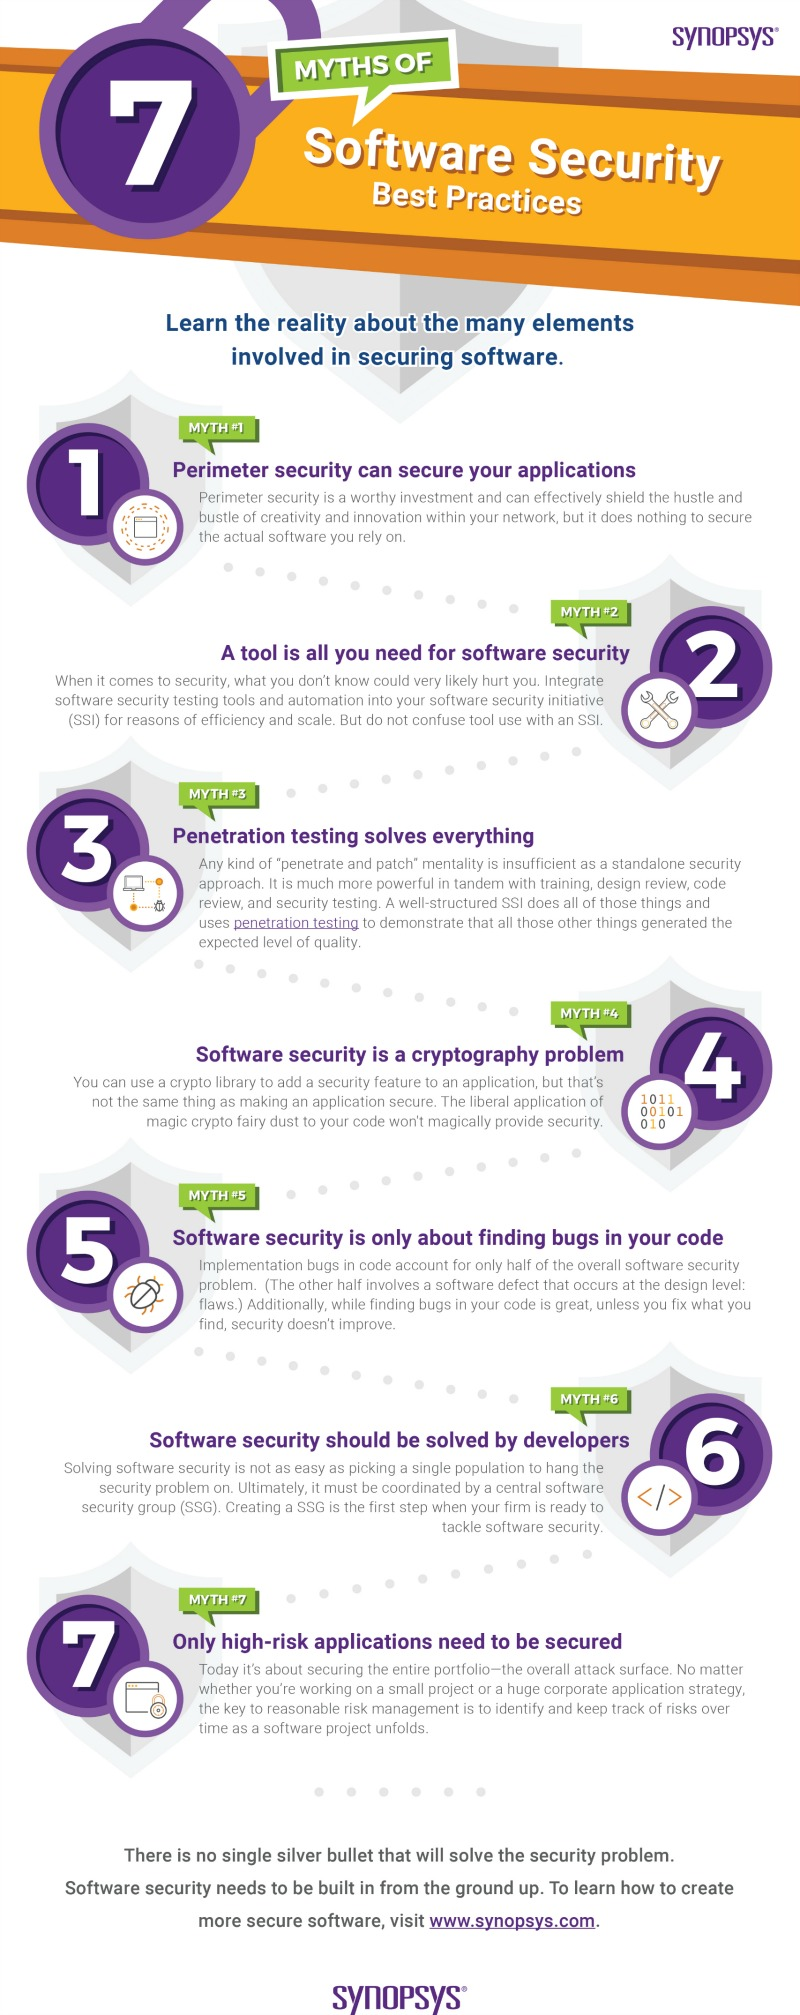 Do you believe the 7 myths of software security best practices?